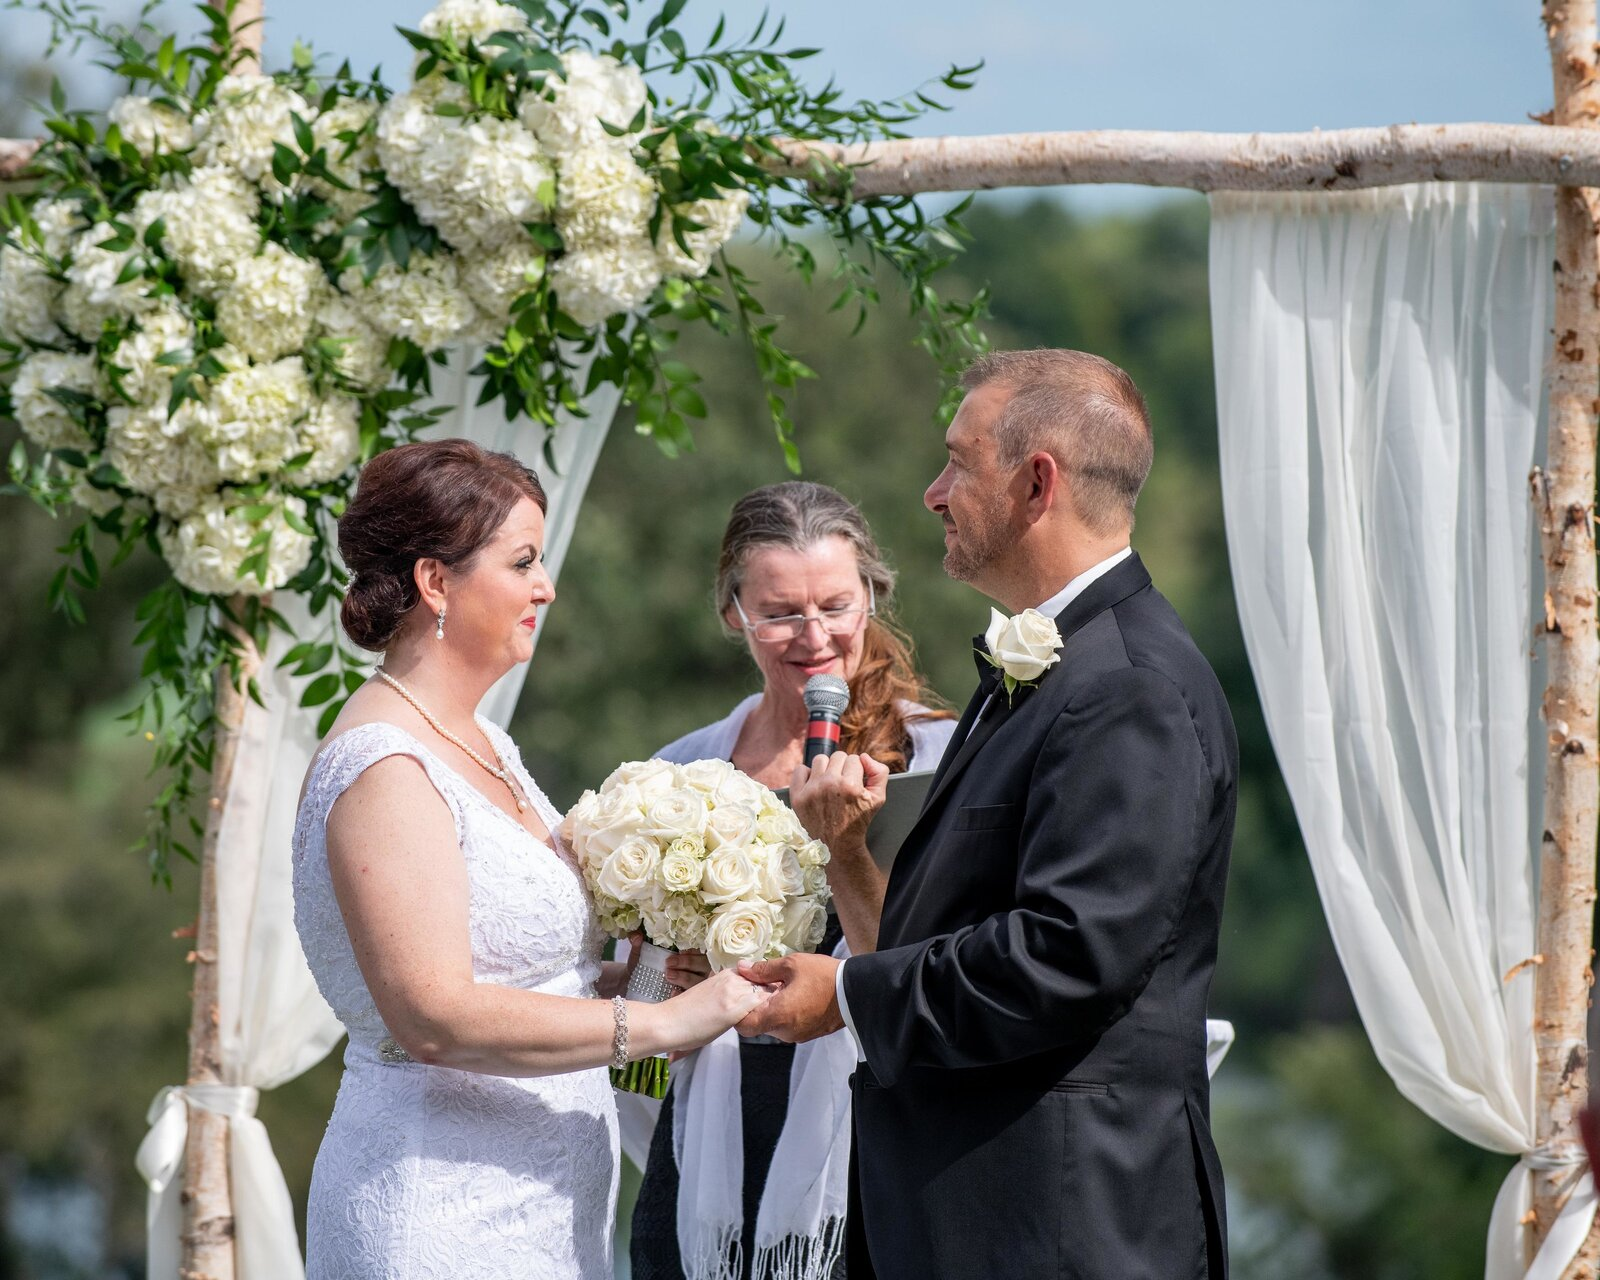 wedding-reception-lake-geneva-wedding-ceremony-outdoors